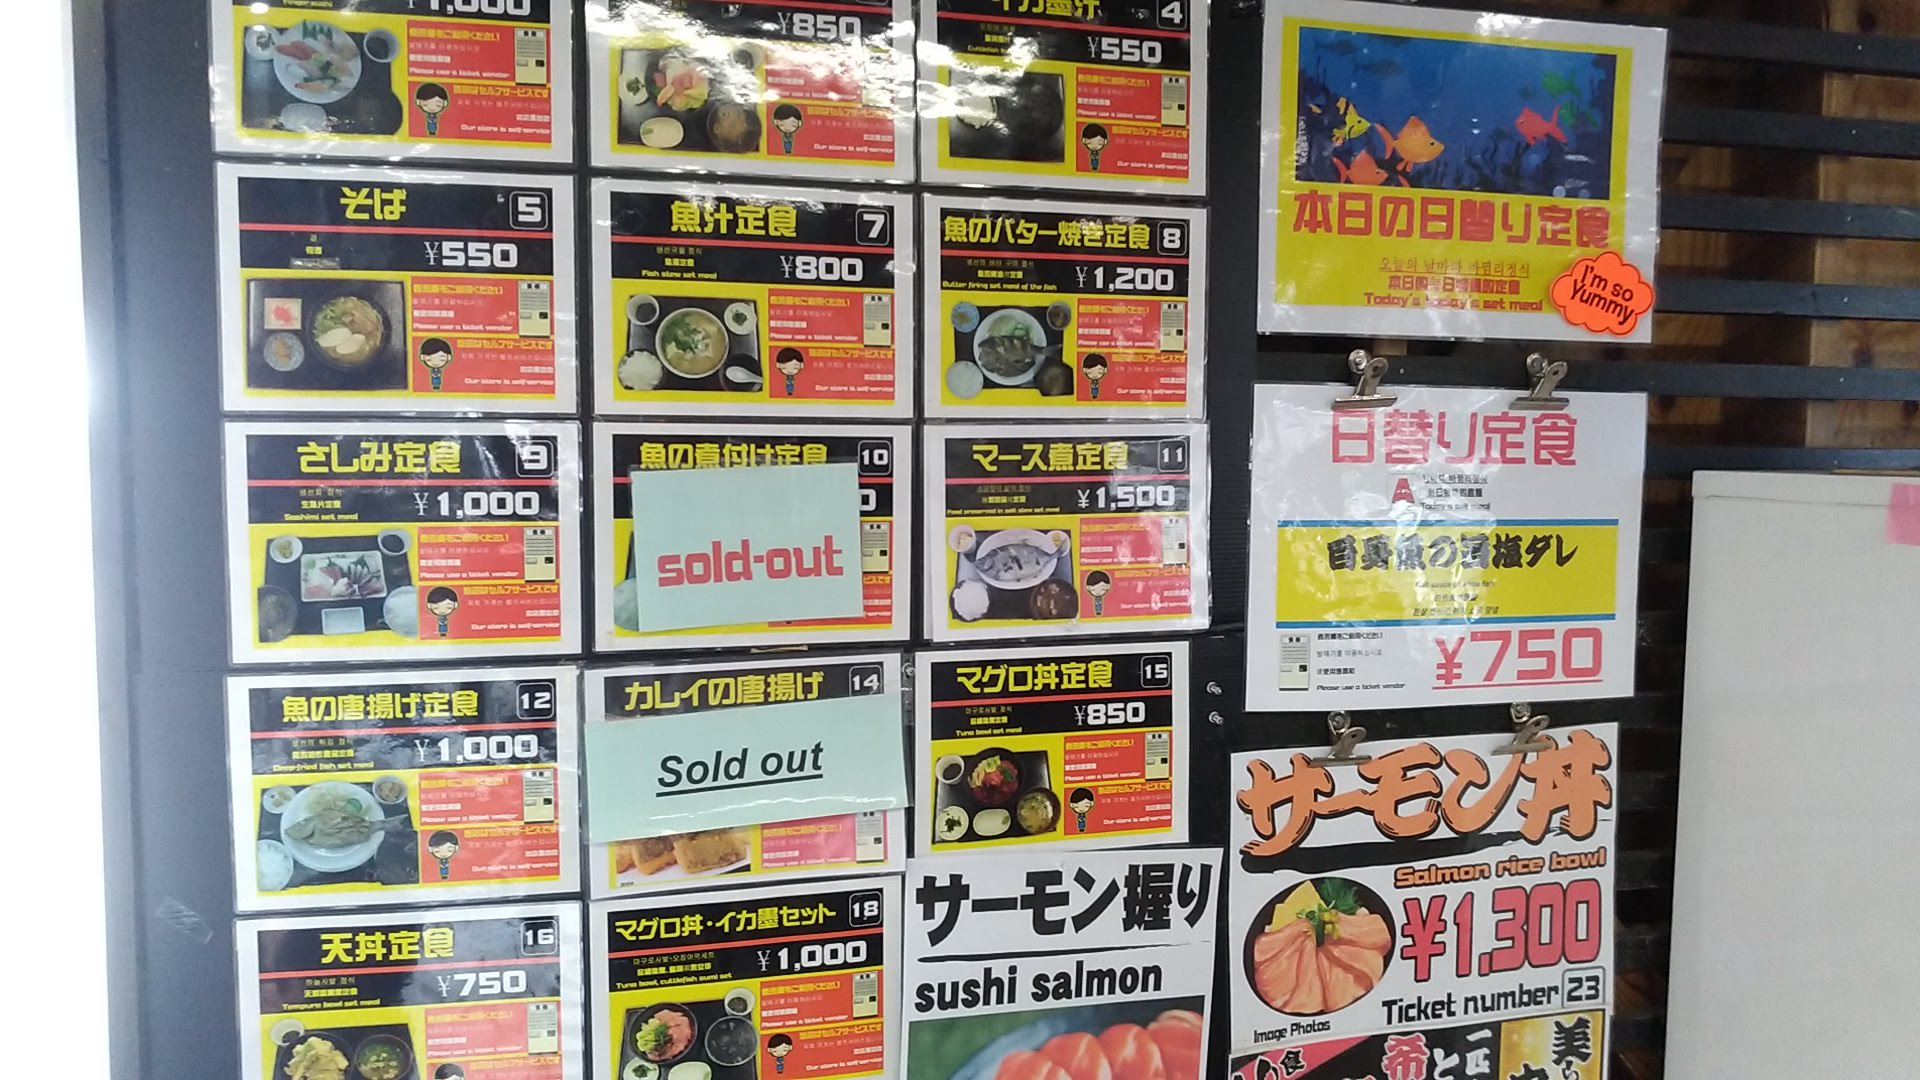 The menu of Nago fishing port fishery direct sales shop